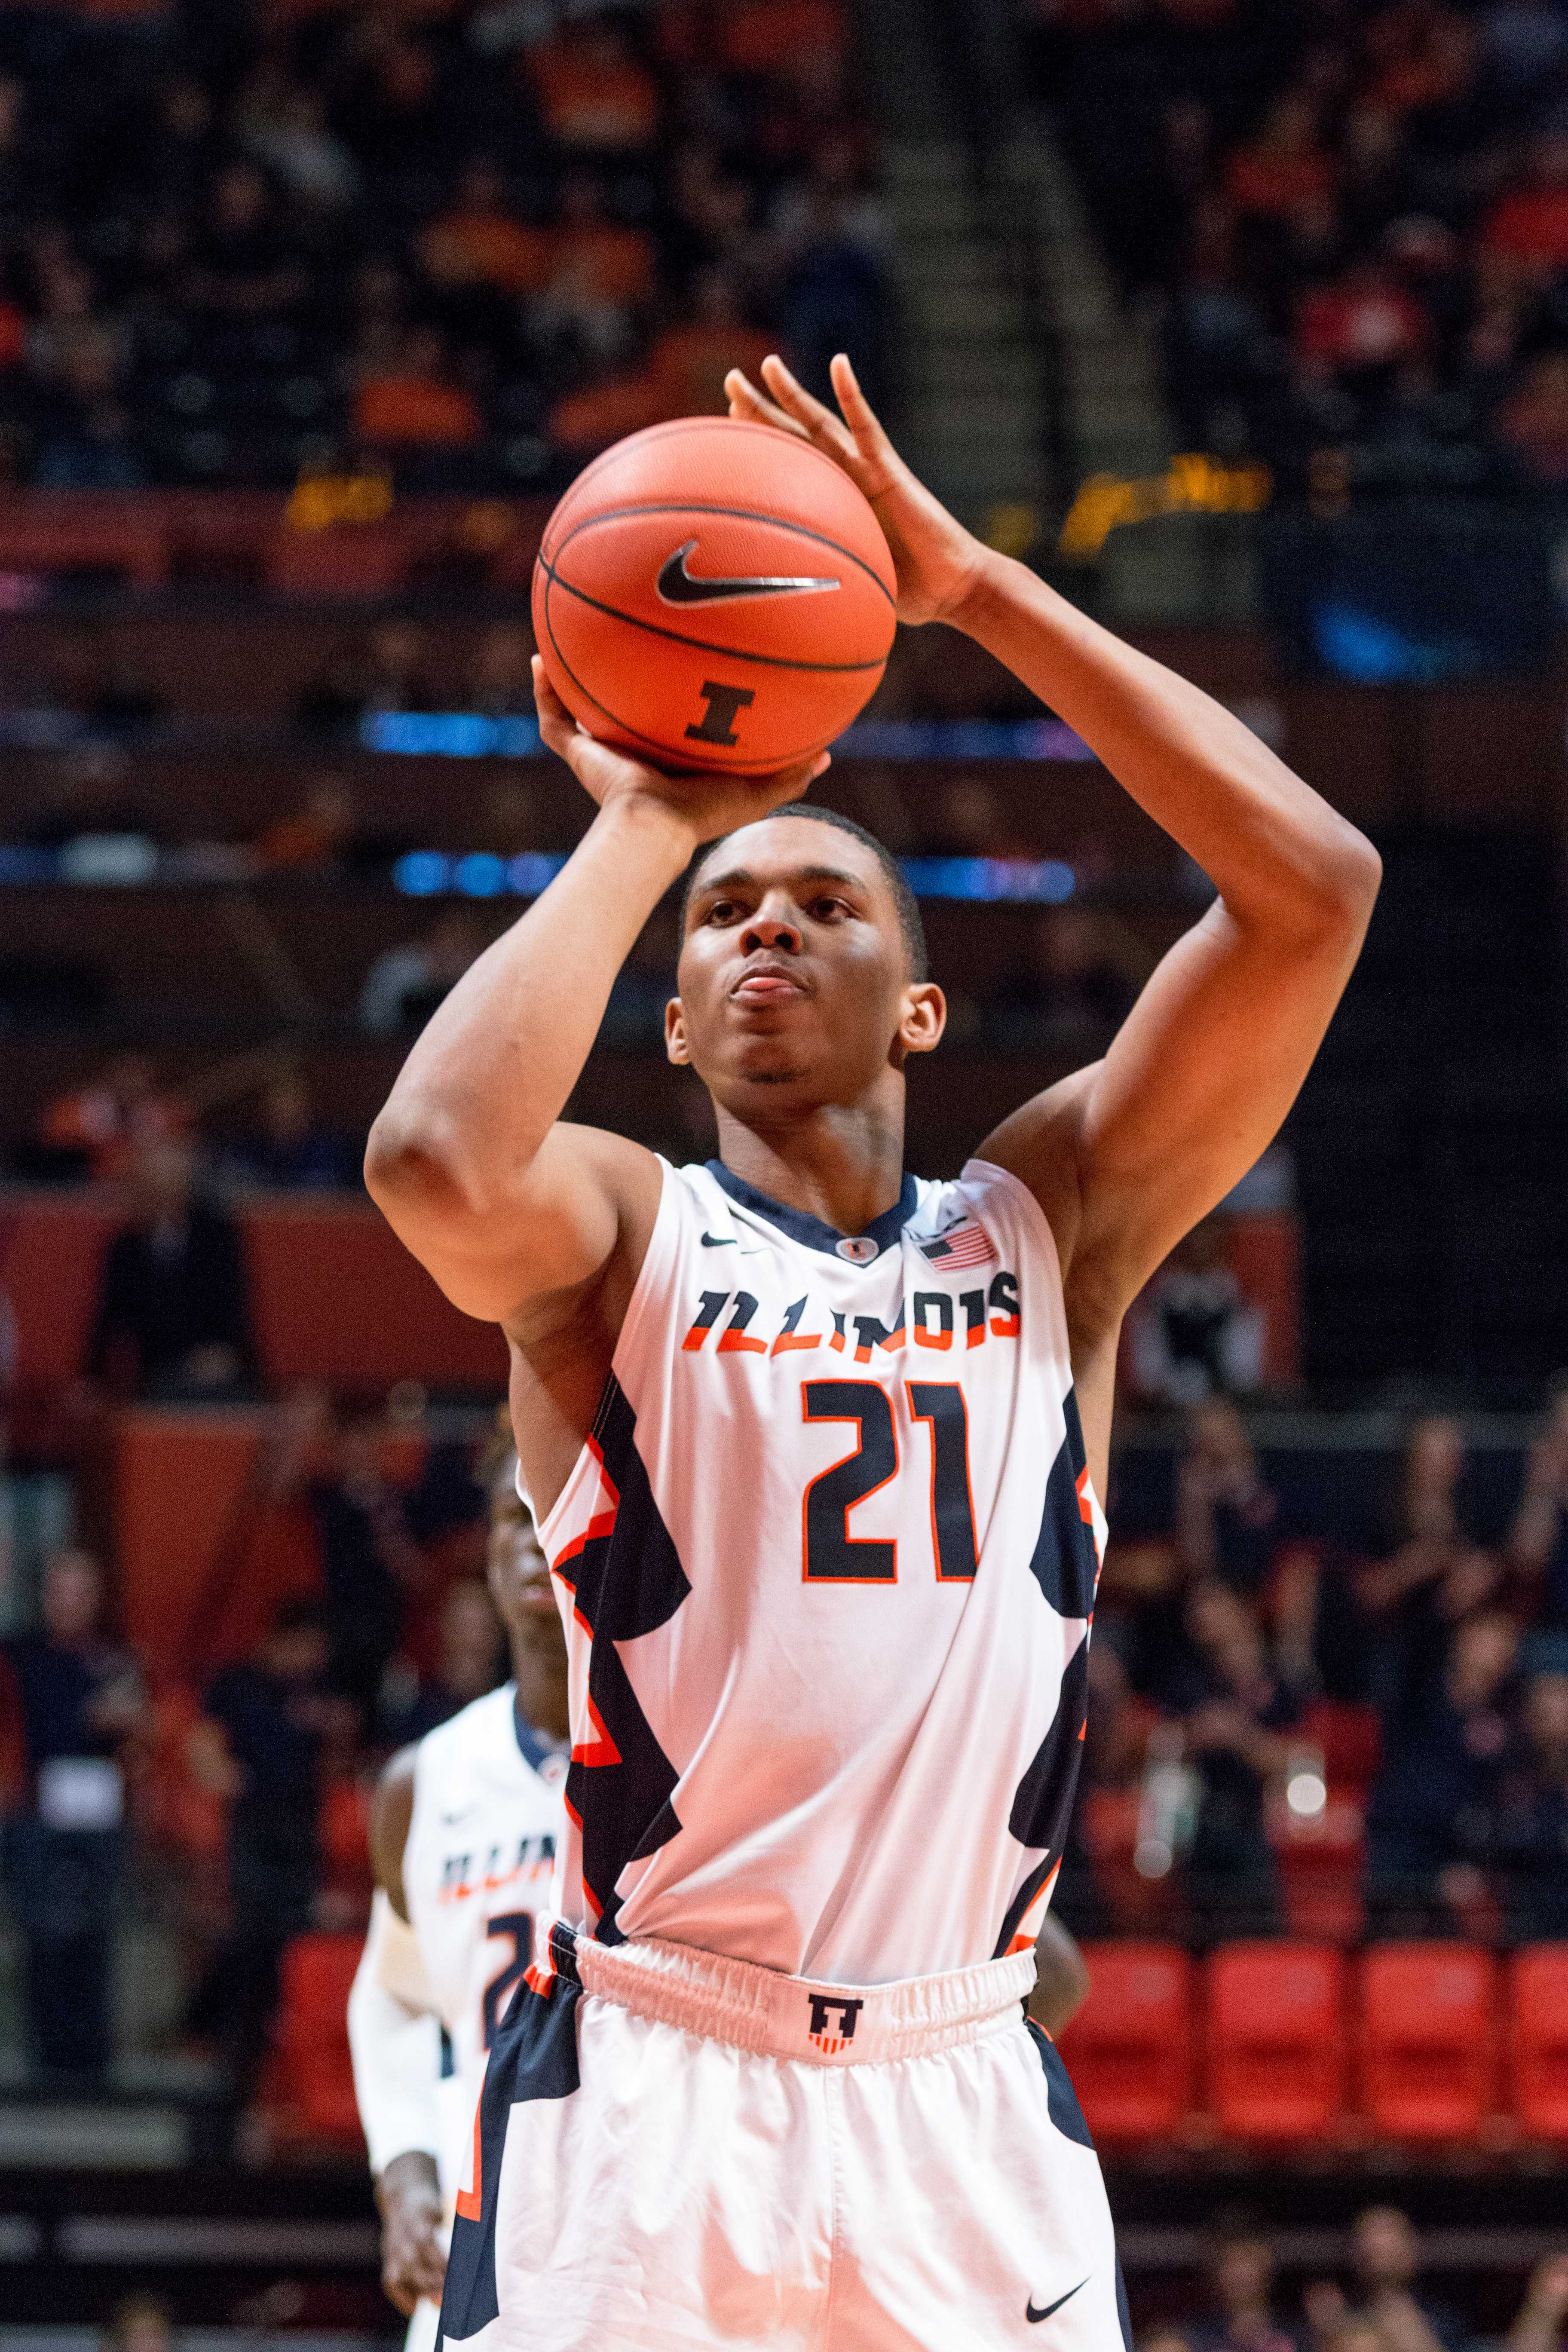 Illinois' Malcolm Hill shoots a free throw during the game against Rutgers at the State Farm Center on February 17. The Illini won 82-66.